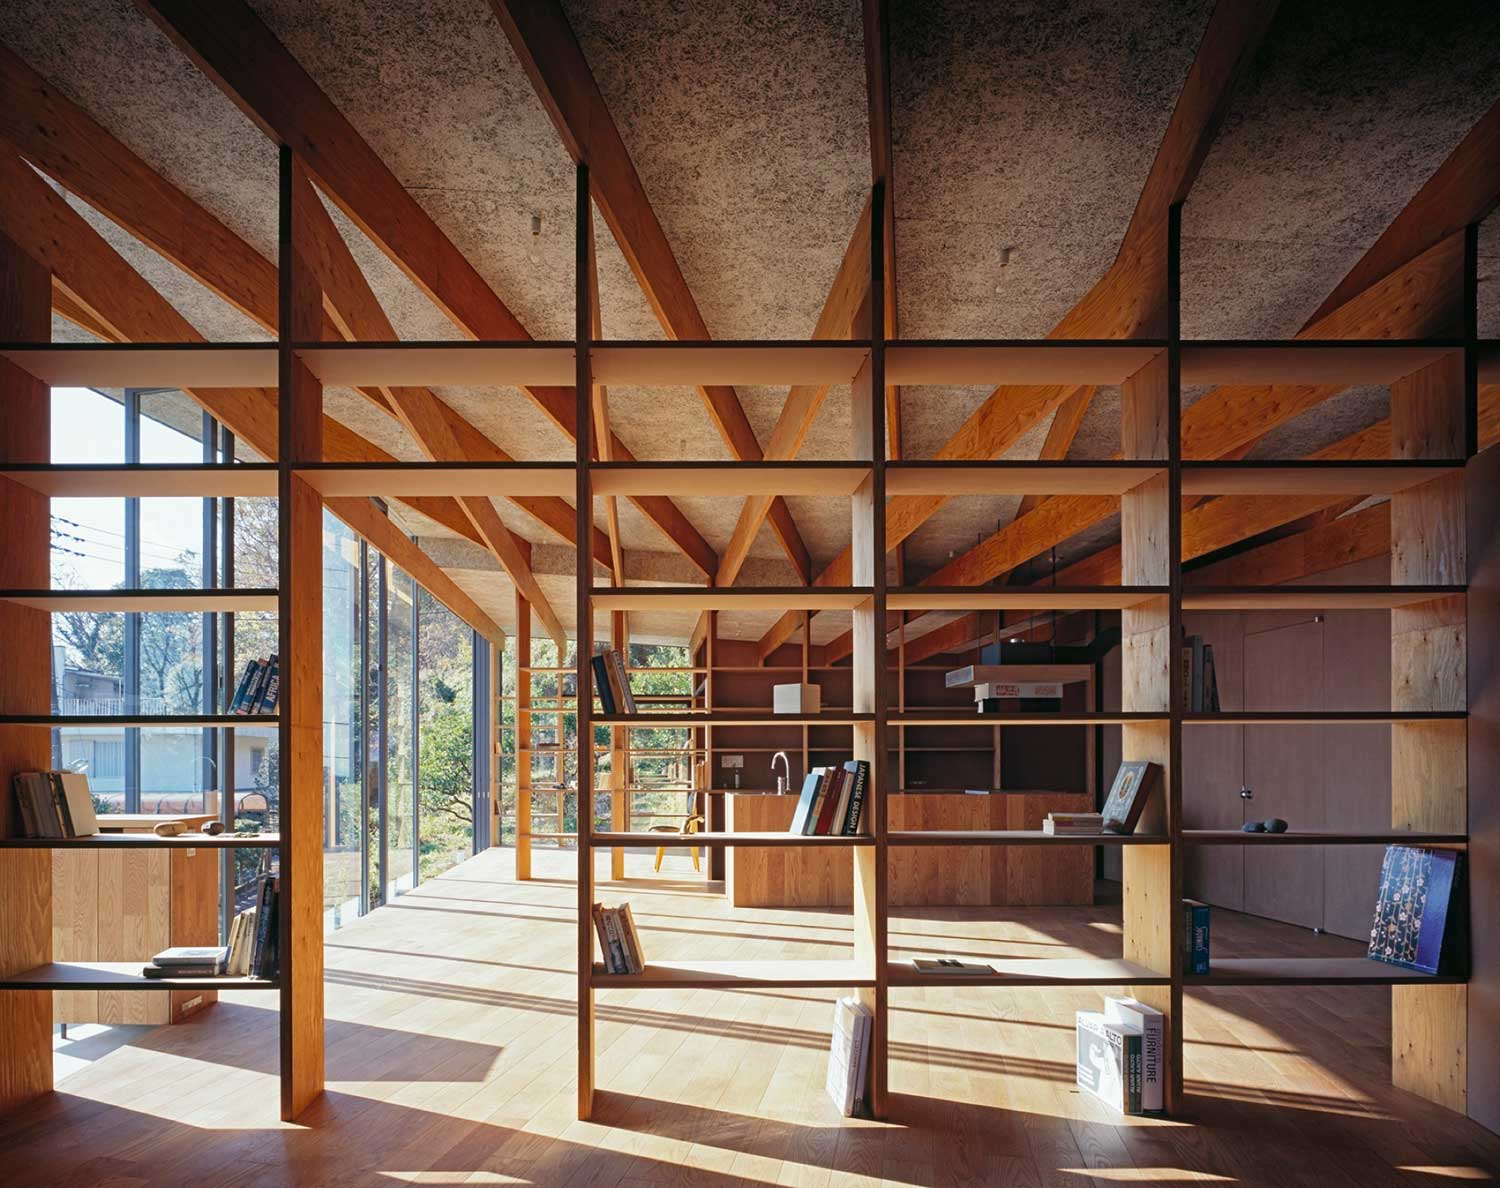 Geo metria by mount fuji architects studio japan for Small wooden structures